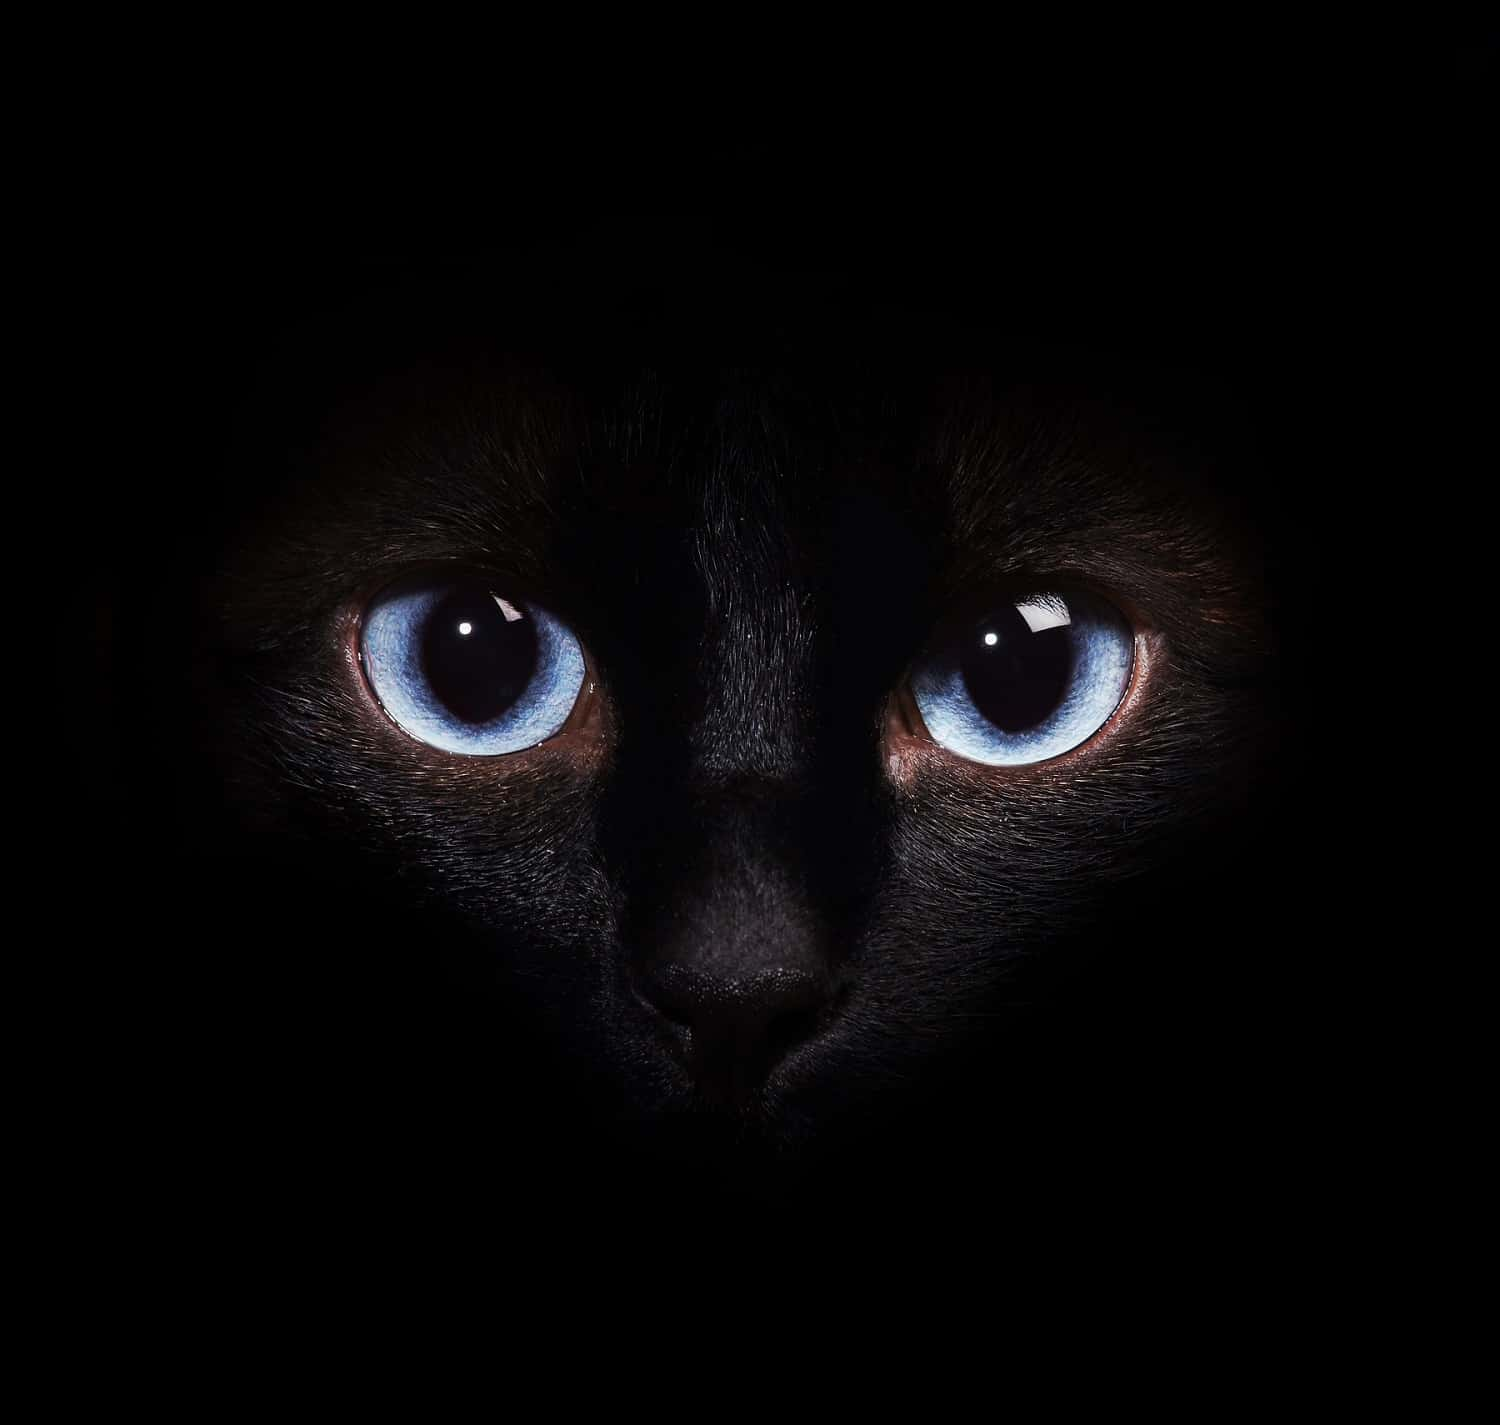 siamese eyes